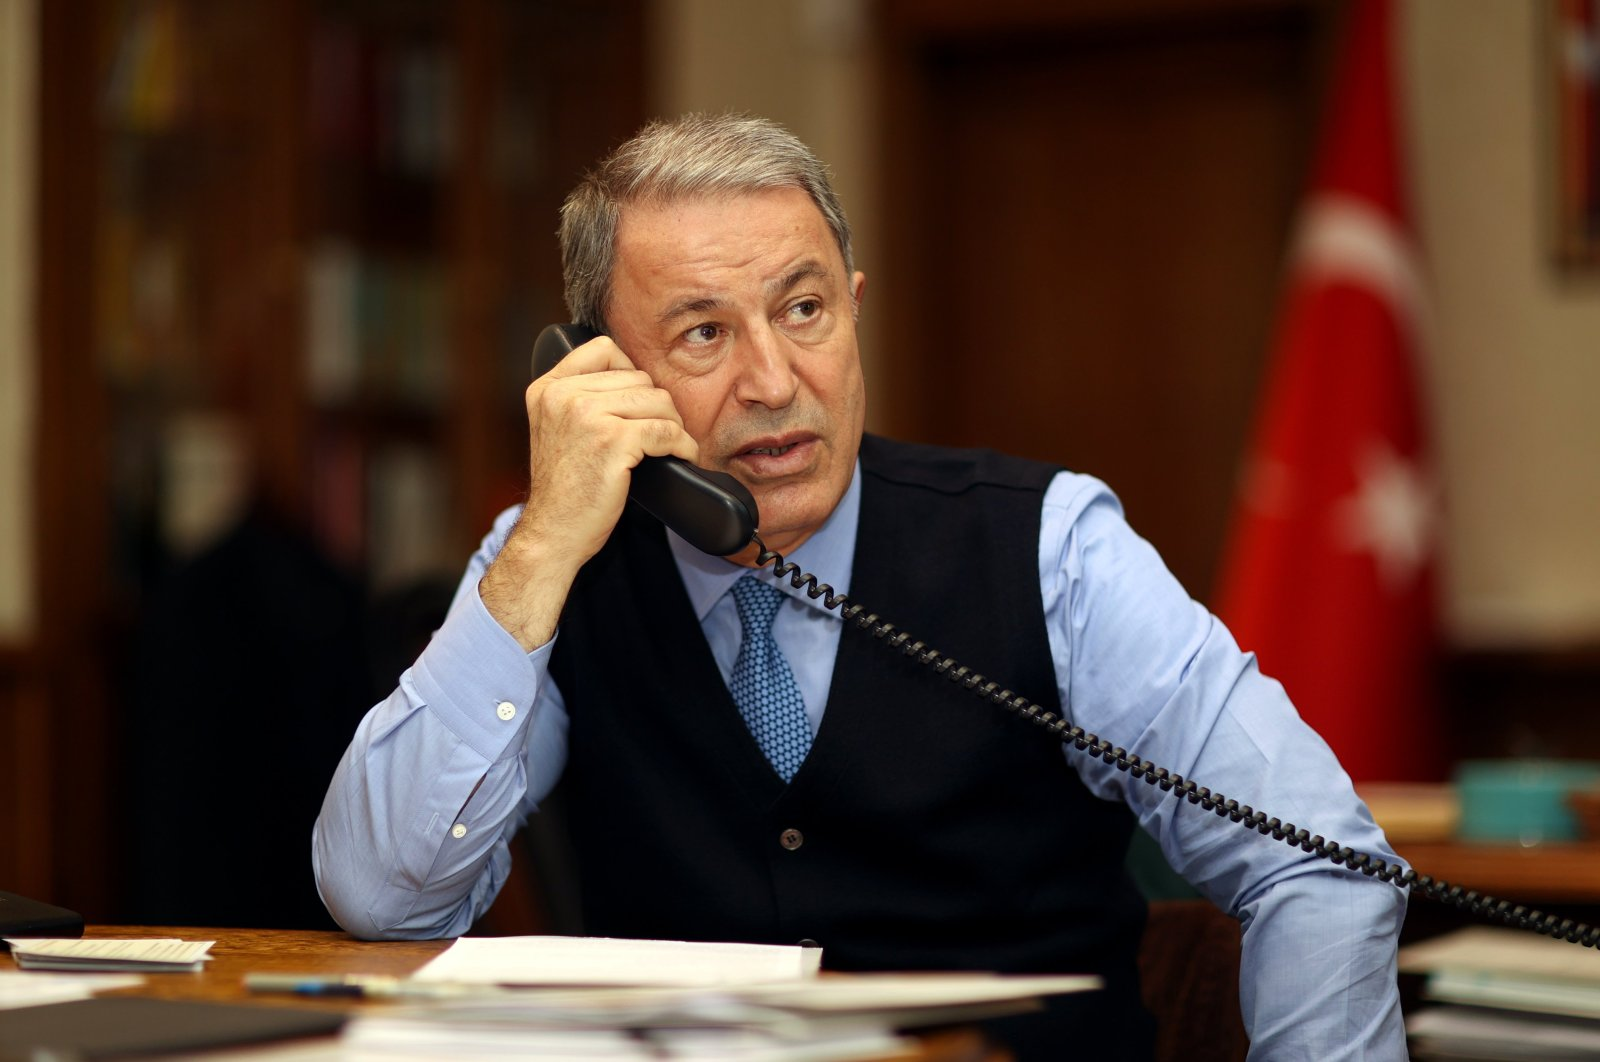 Defense Minister Hulusi Akar and his German counterpart Annegret Kramp-Karrenbauer discussed the latest situation in Afghanistan, Aug. 19, 2021 (DHA Photo)